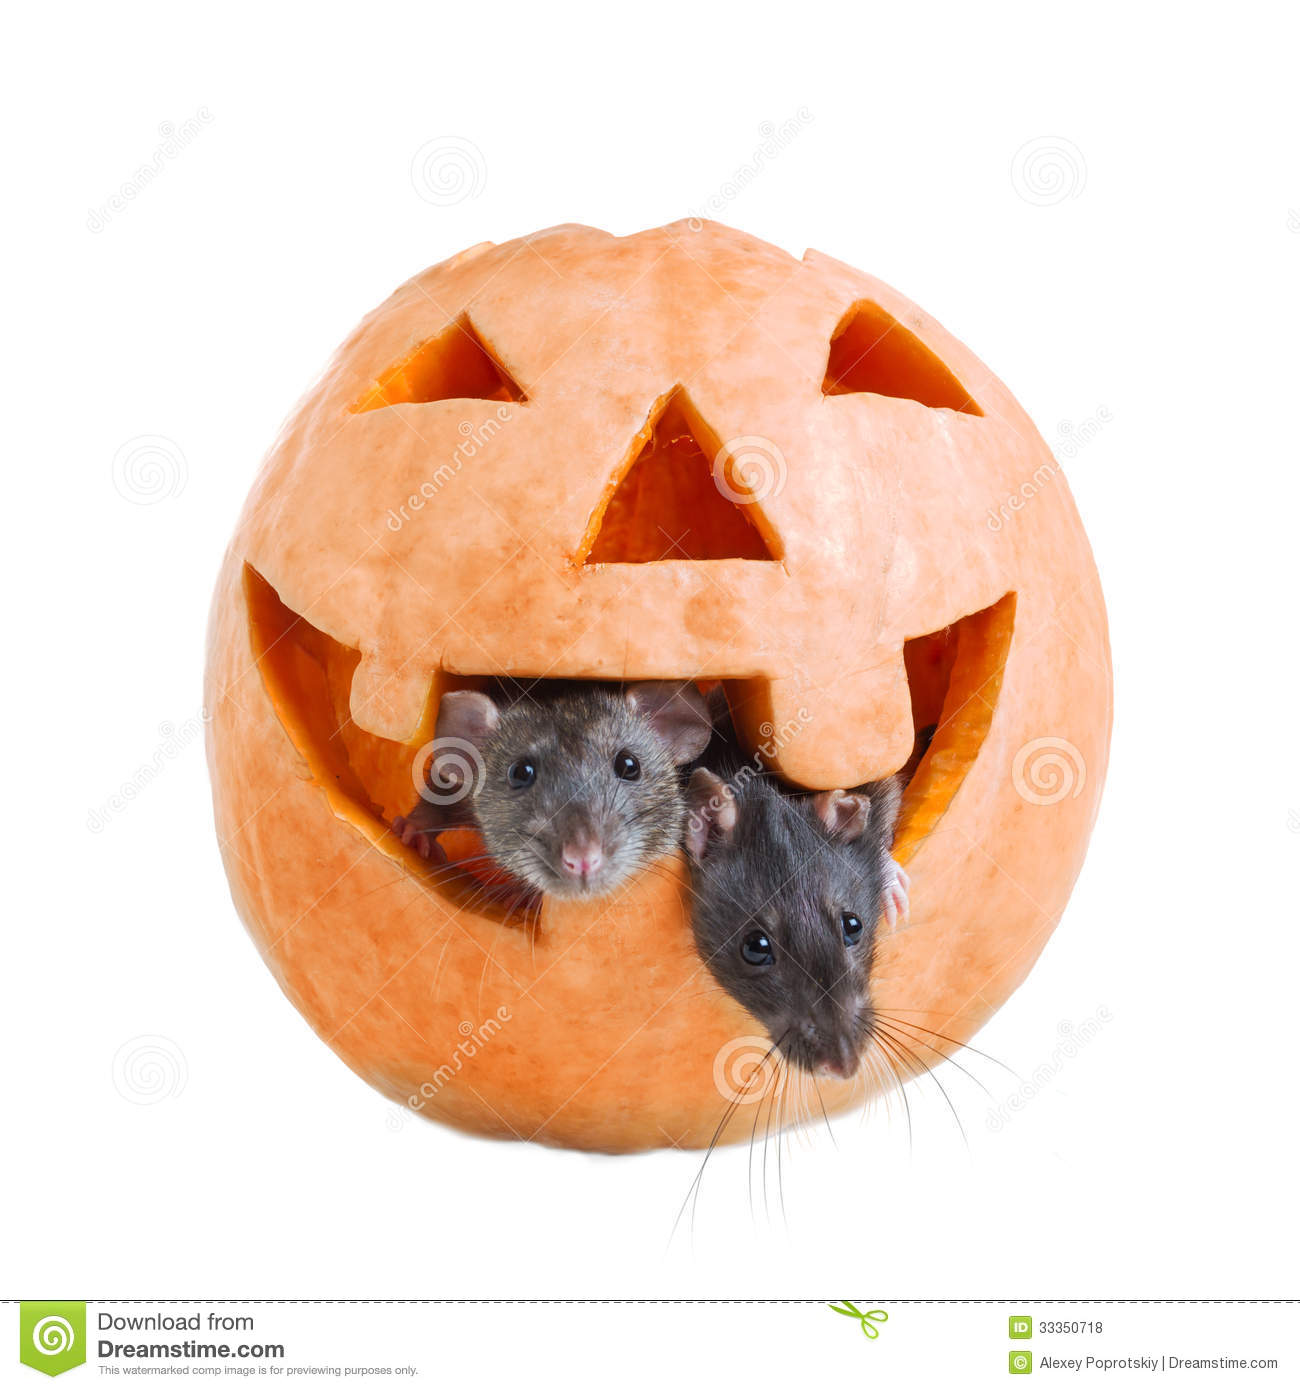 two mouse and pumpkin halloween stock photo - image of spooky